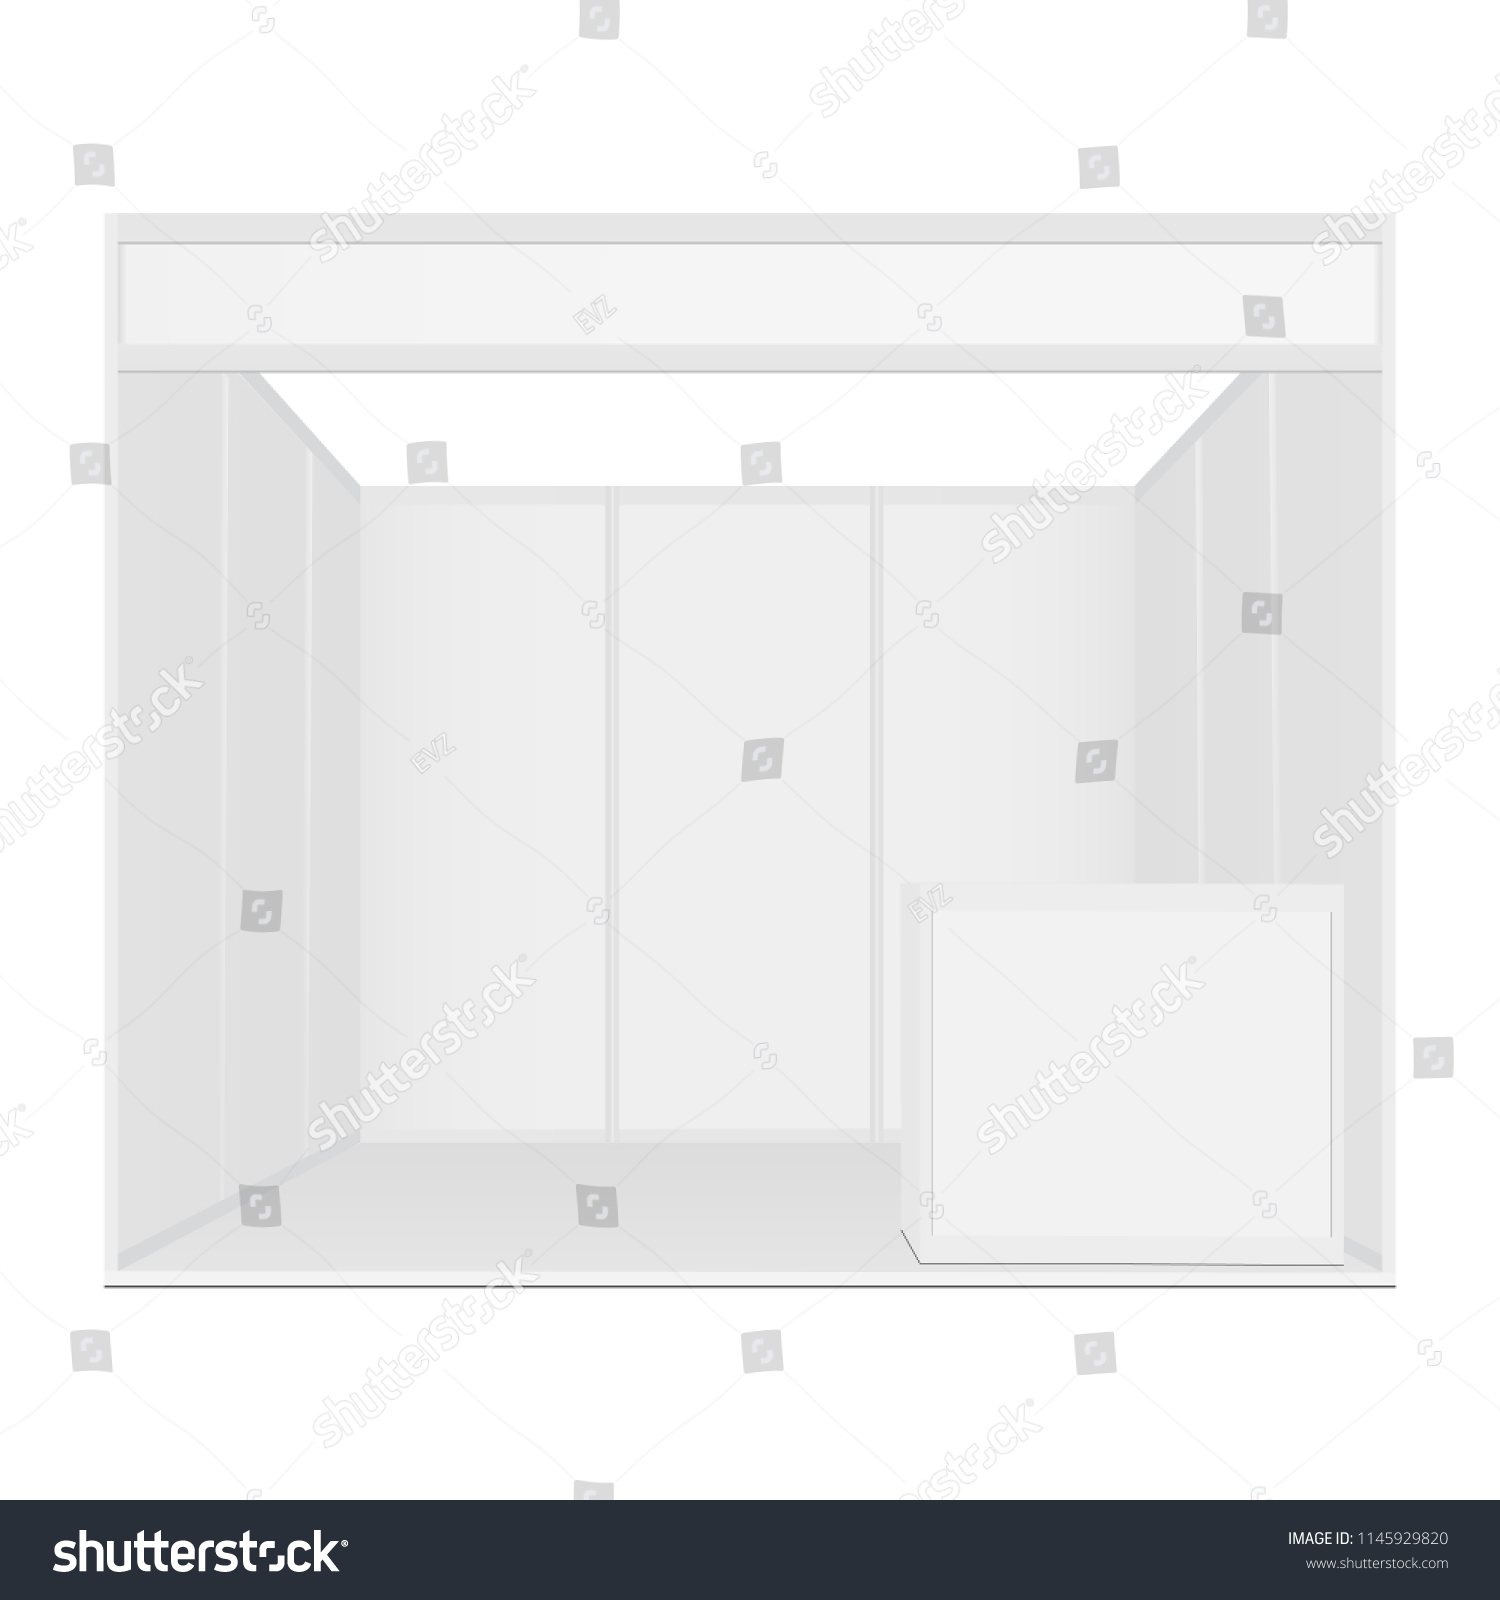 Exhibition Booth Mockup : Exhibition booth mockup table front view stock vector royalty